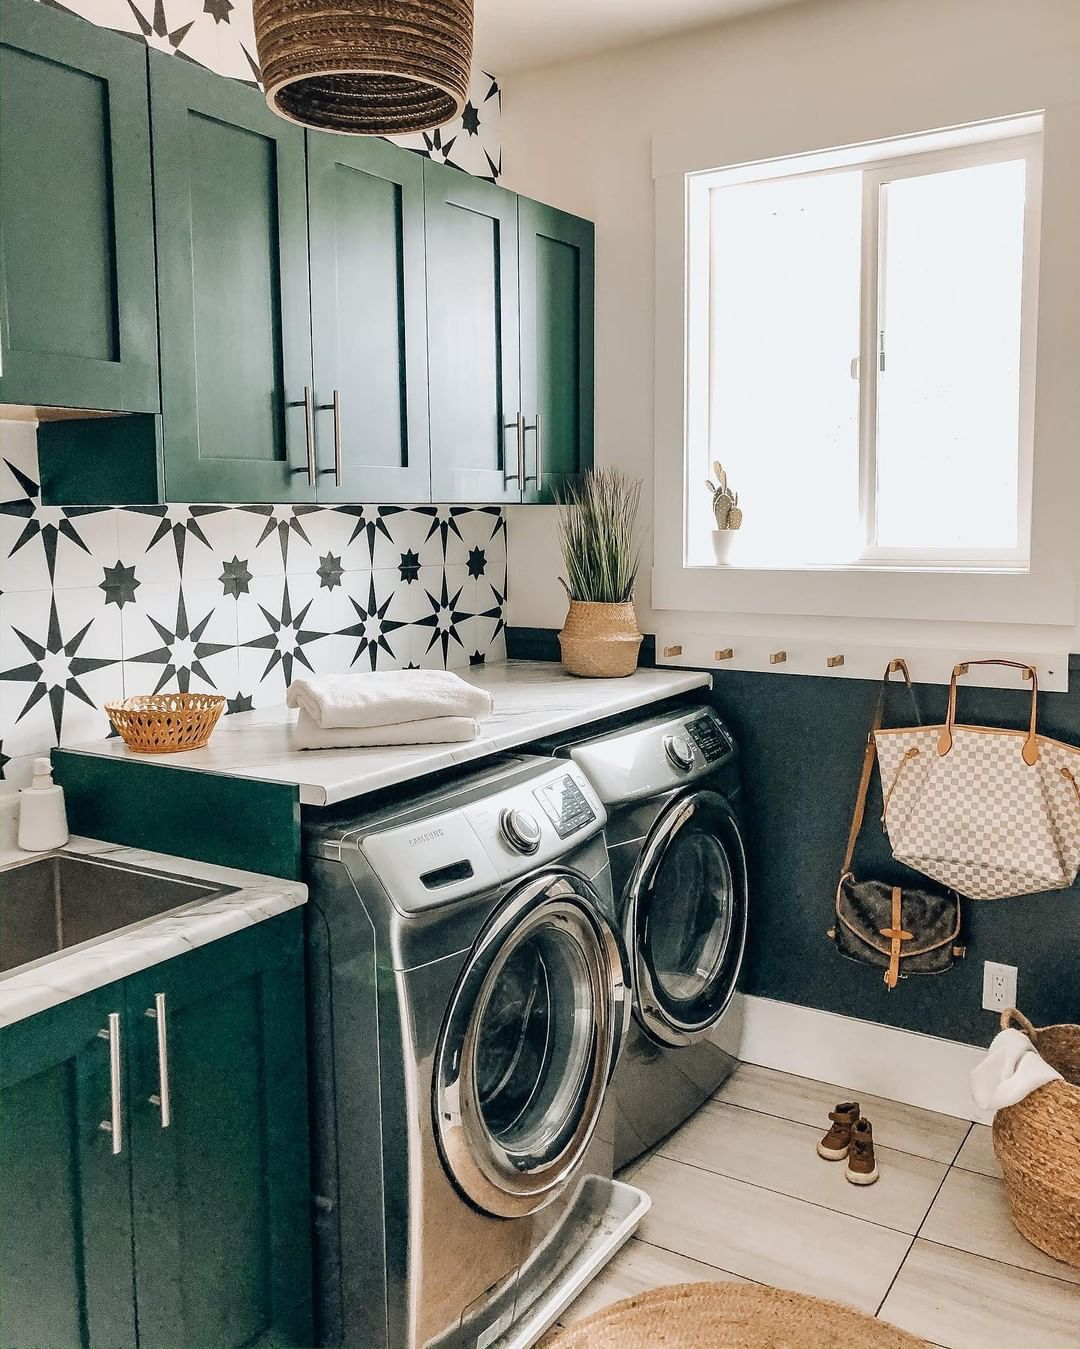 50 Clever Laundry Room Ideas That Are Practical And Space Extra Storage Small Rooms Cabinet